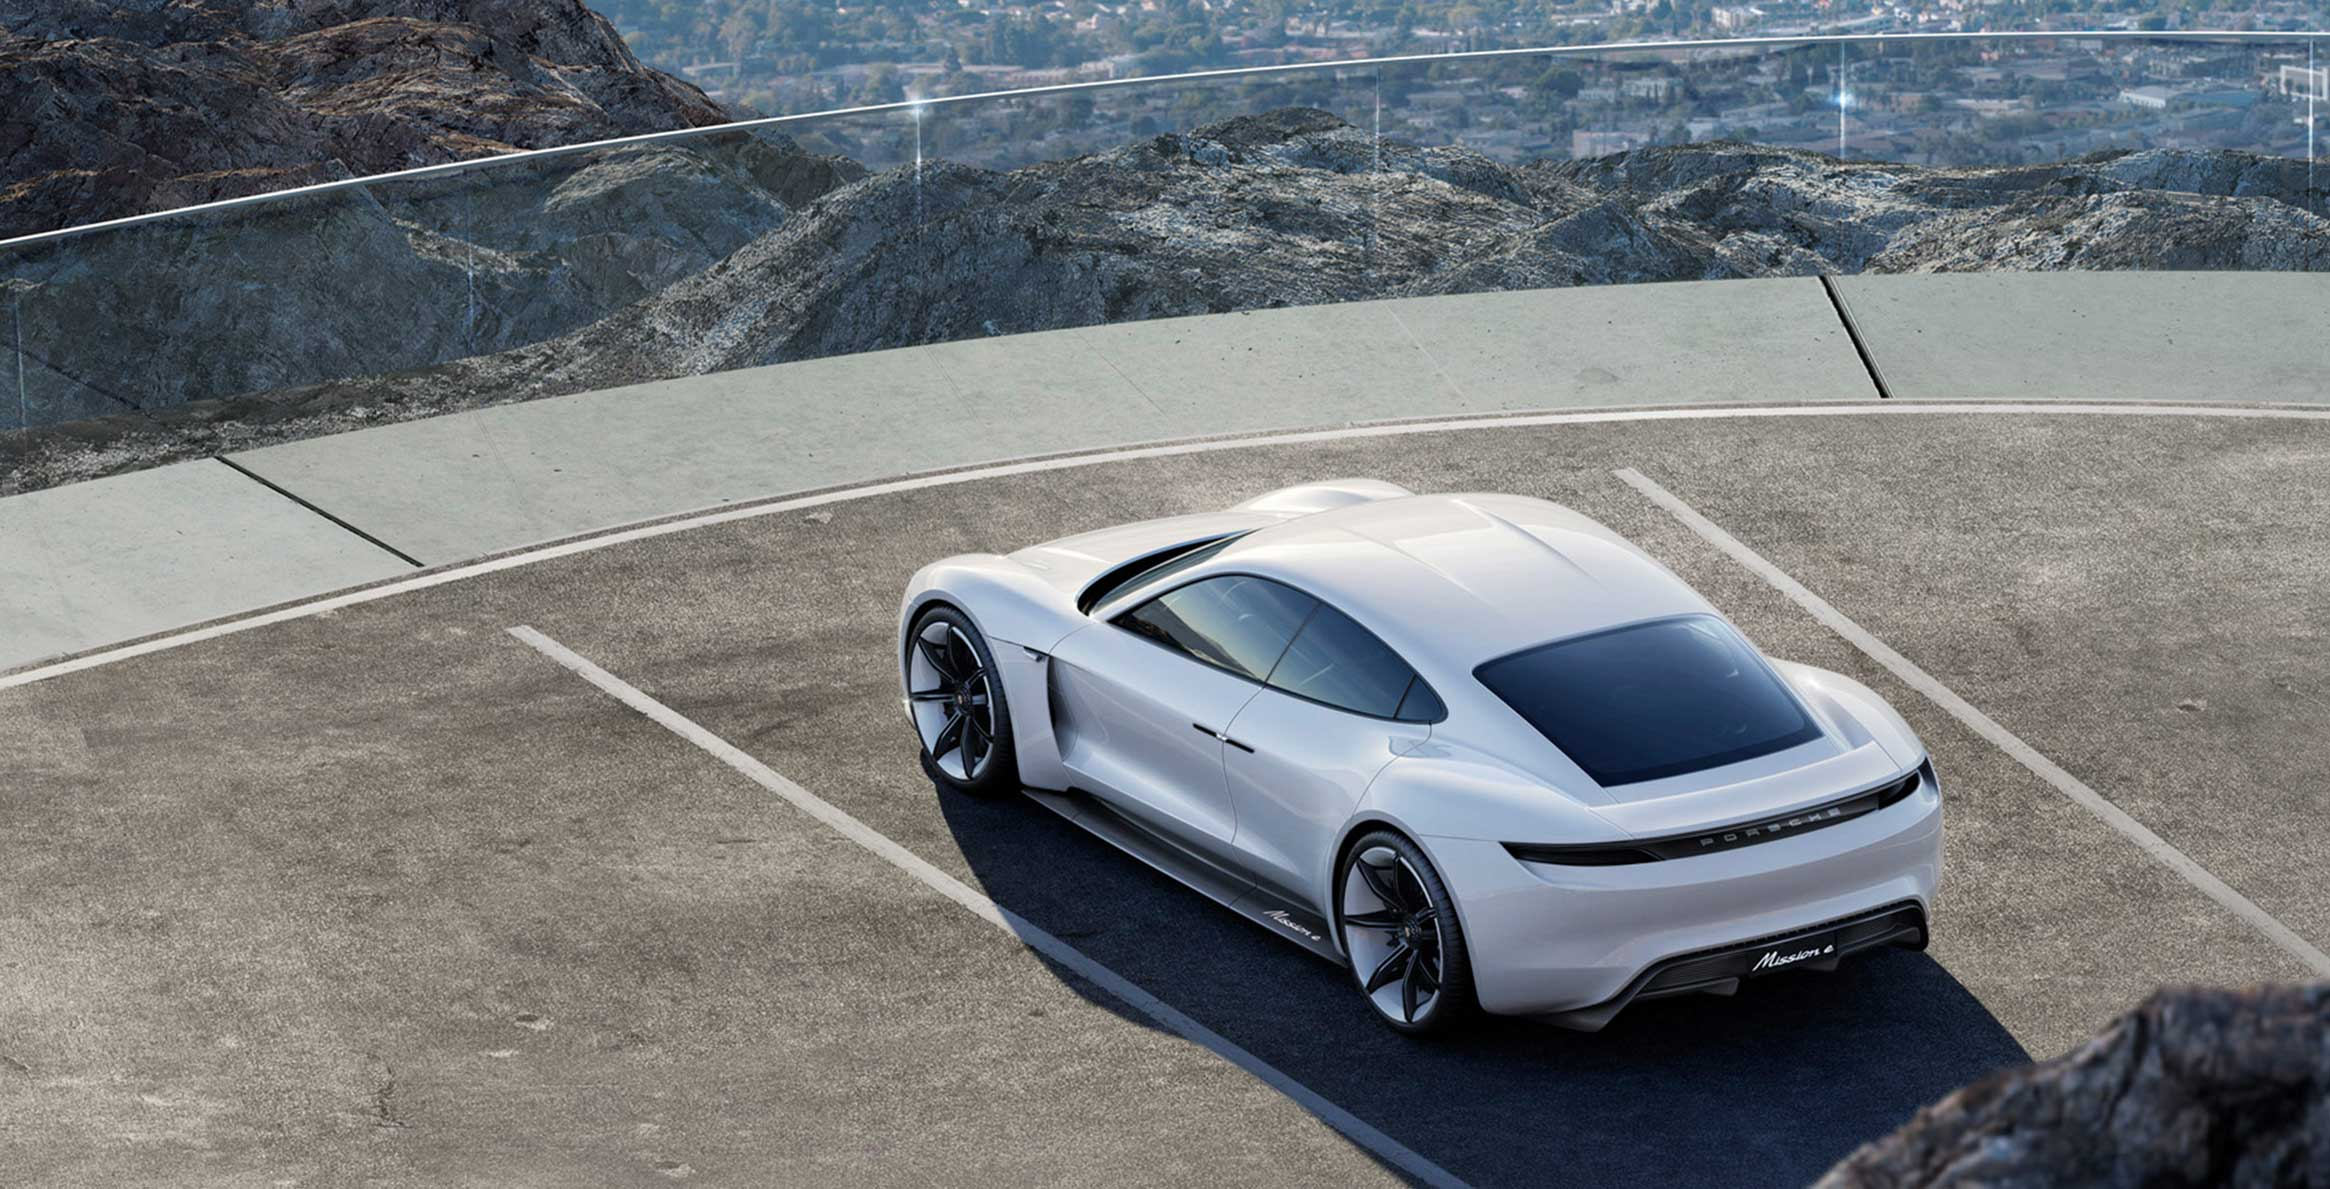 Porsche Will Bizarrely Brand The Flagship Taycan EV As The 'Turbo'